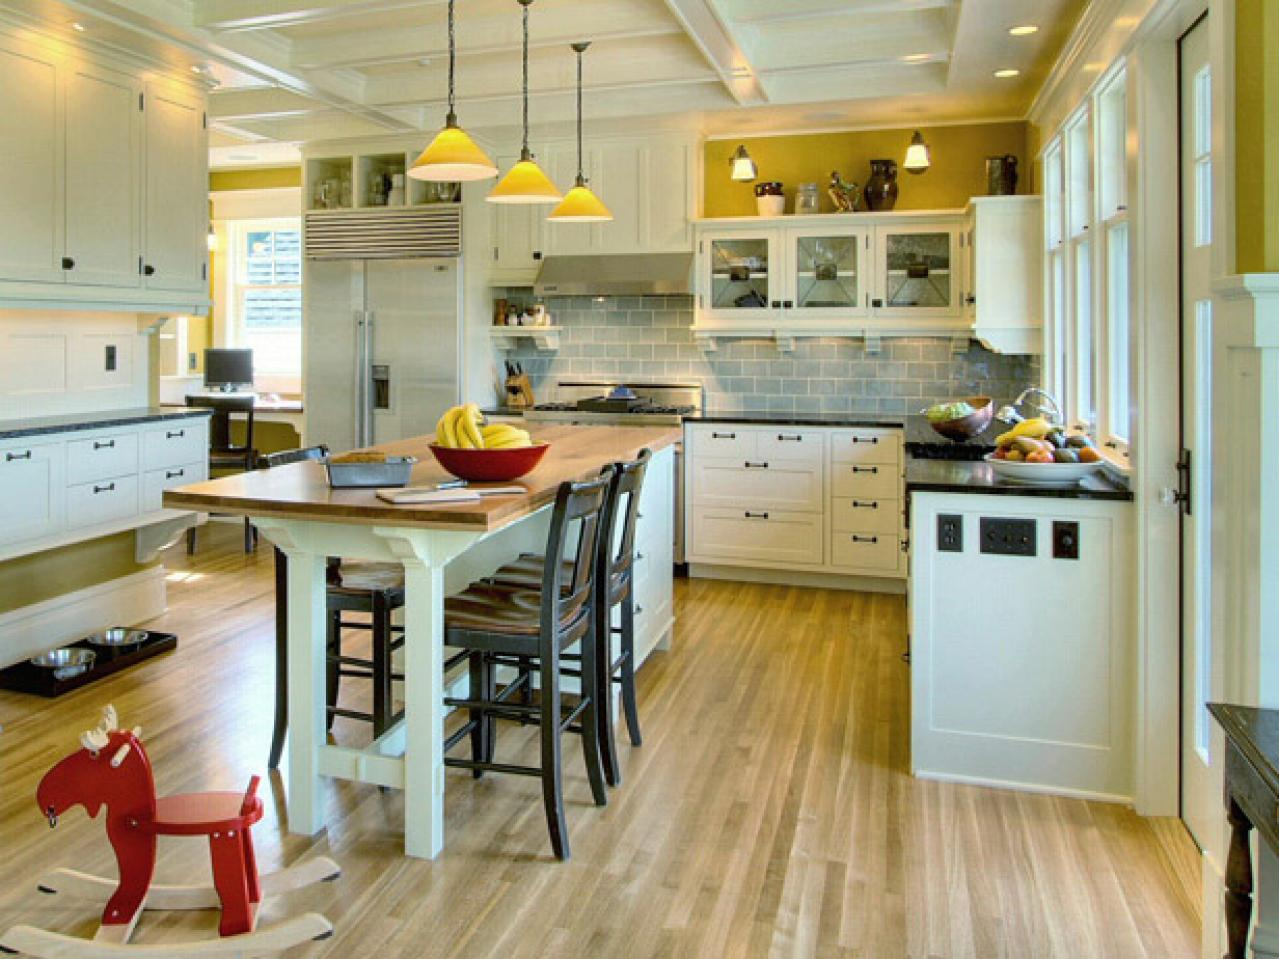 Kitchen Backsplash Yellow Walls green countertops: pictures & ideas from hgtv | hgtv